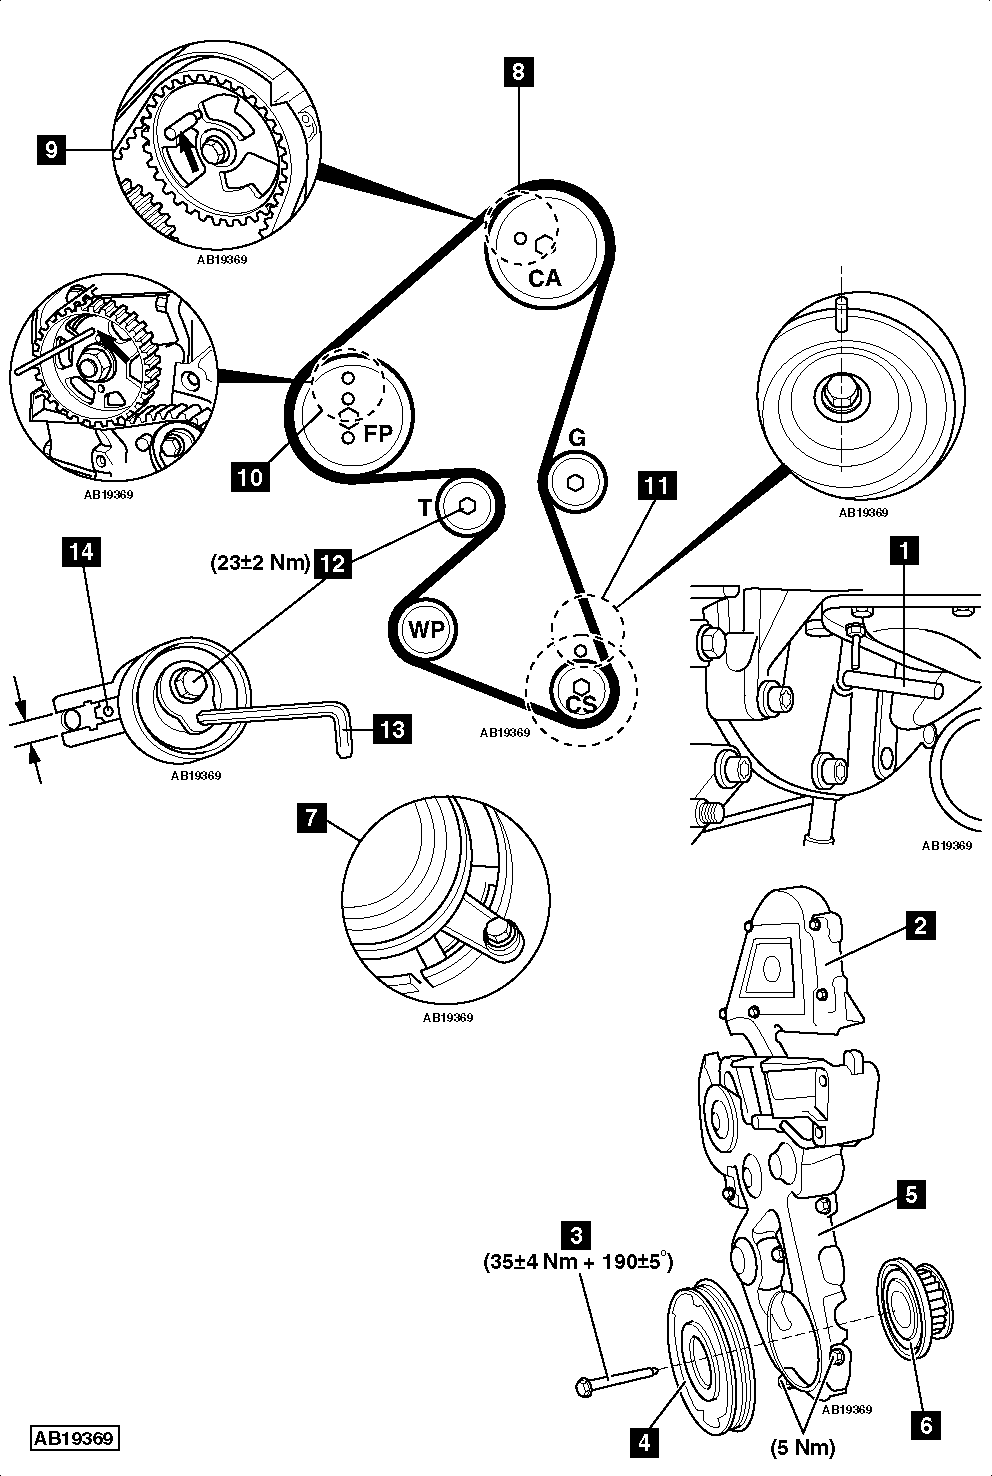 chopper wiring diagram with Mini Cooper Power Steering Wiring Diagram on Gm 3 Wire Alternator Wiring Diagram in addition Showthread together with General Wire Spring Mini Rooter in addition Technical tips body 2 together with Troy Bilt Wiring Harness.